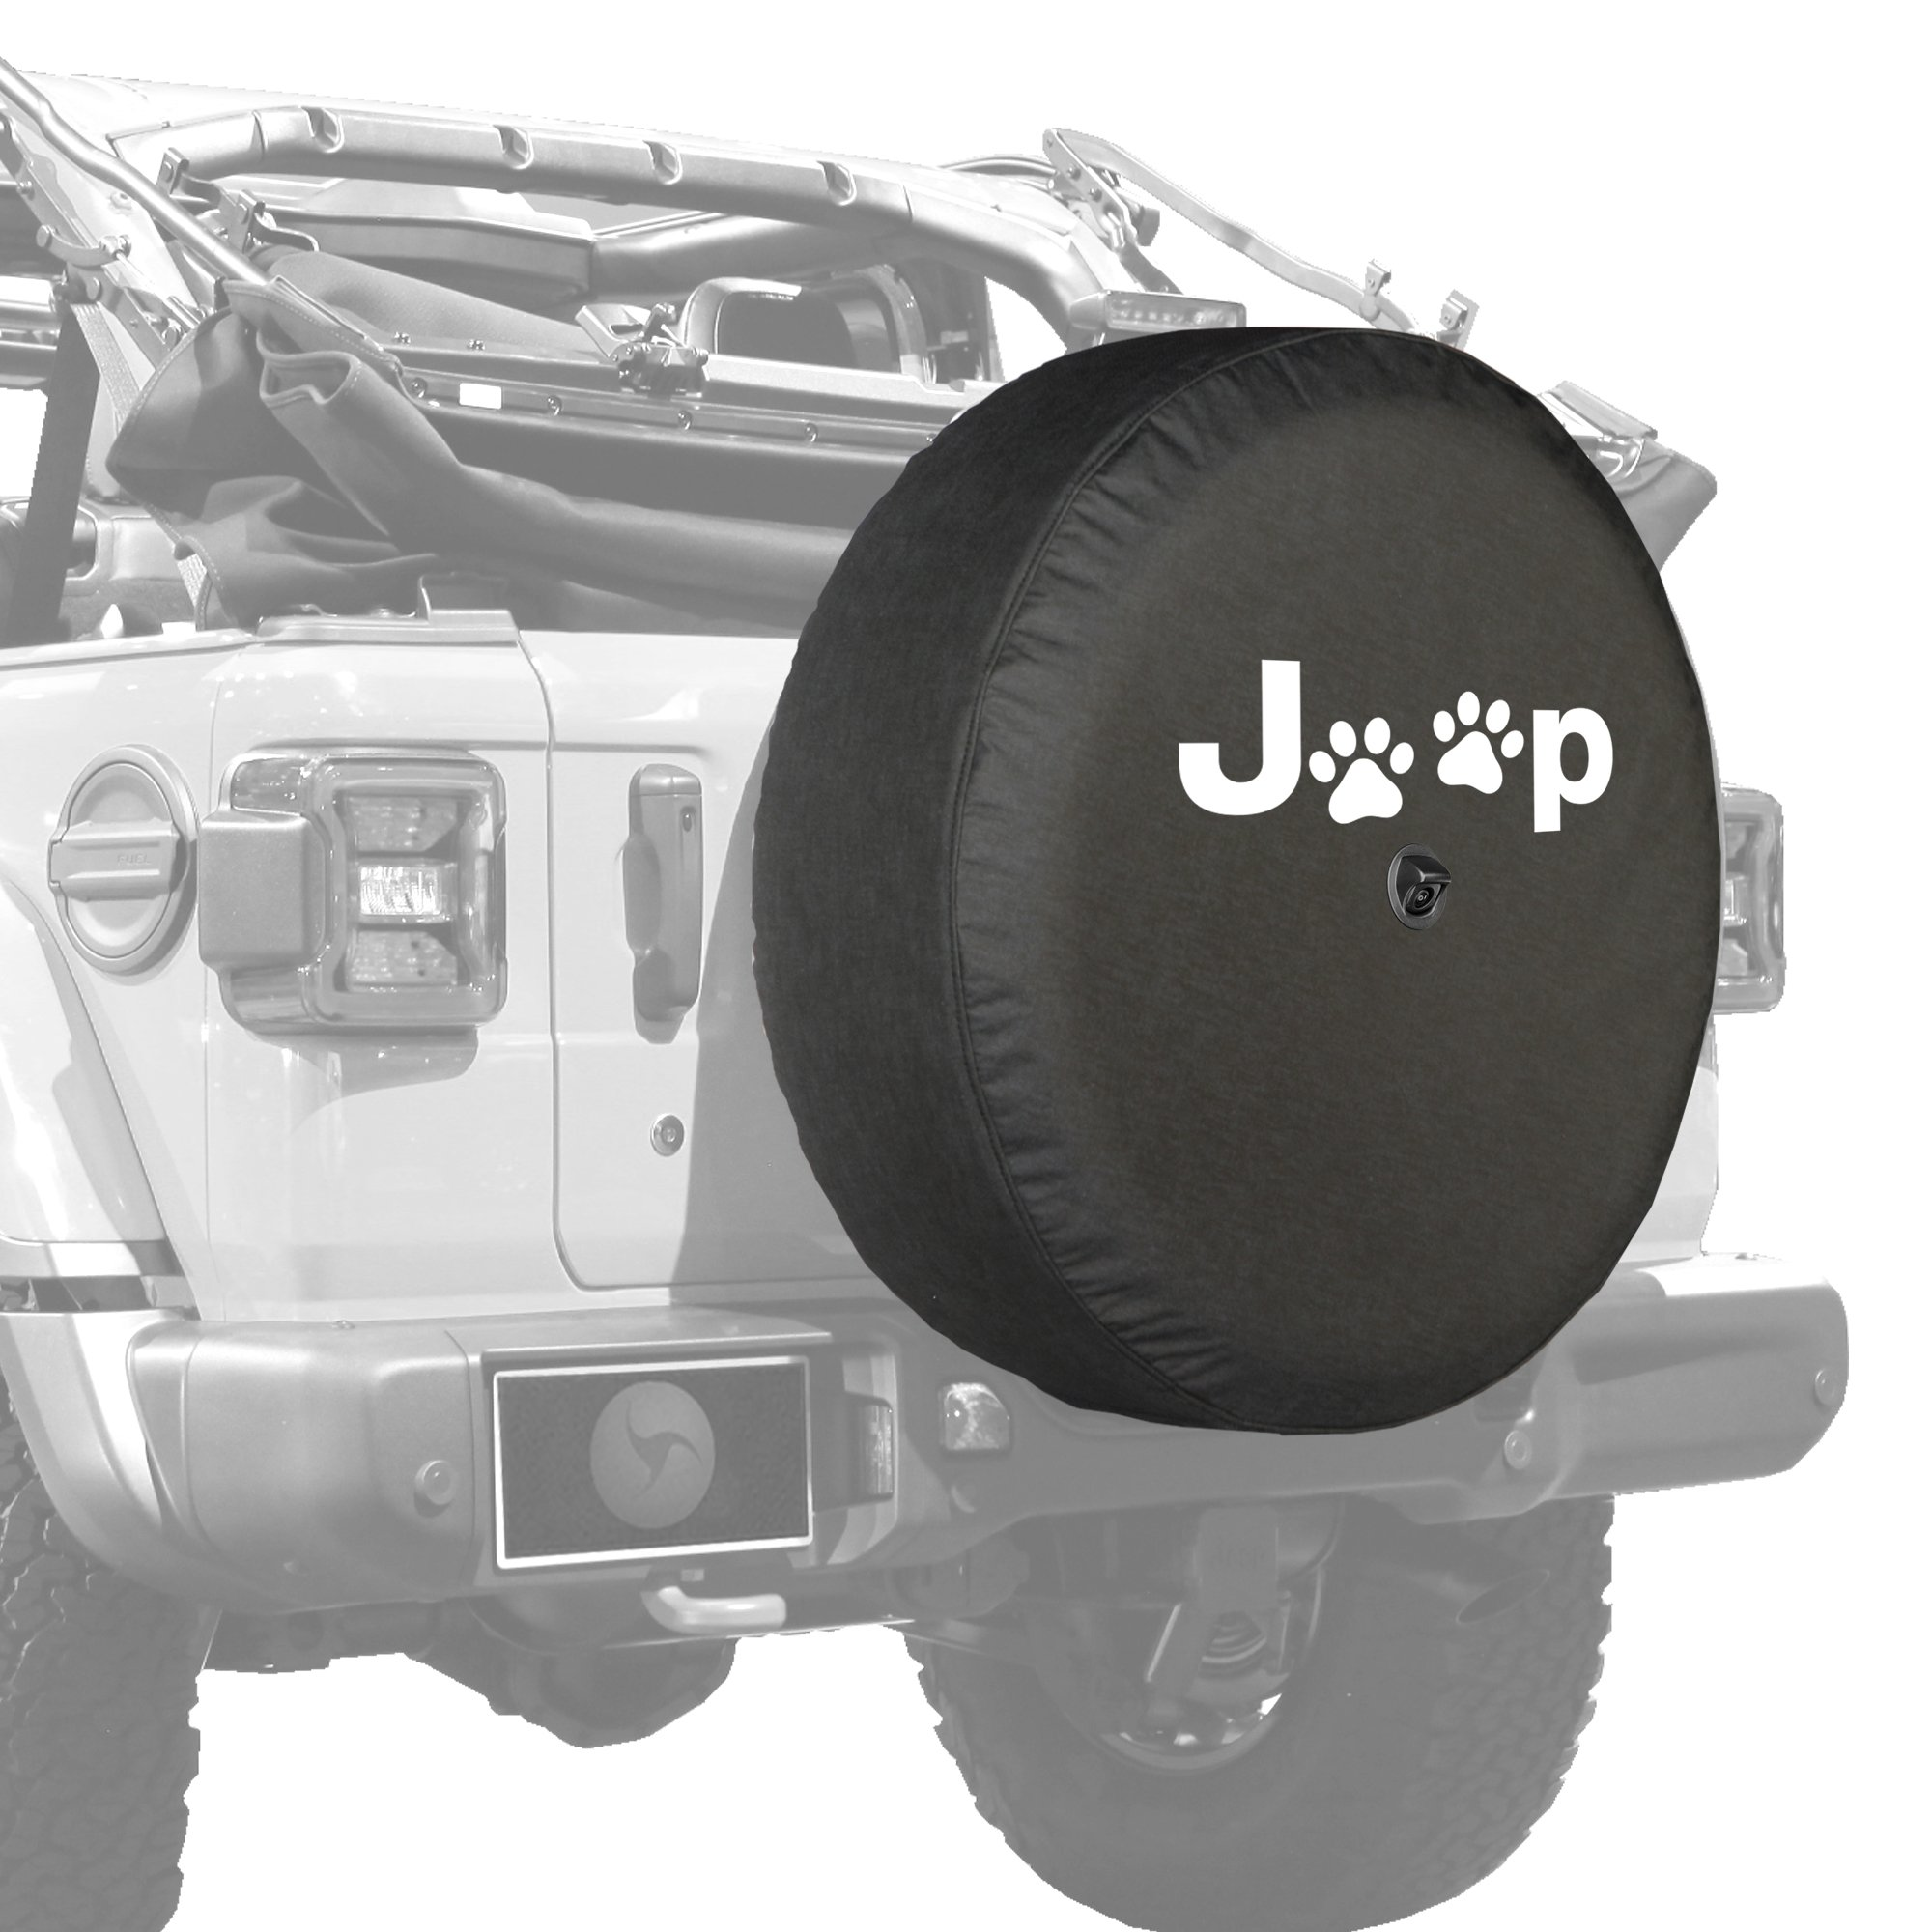 Boomerang 2018 Jeep Wrangler Rubicon JL & JLU - 33'' Soft Tire Cover - Jeep Paws by Boomerang (Image #2)